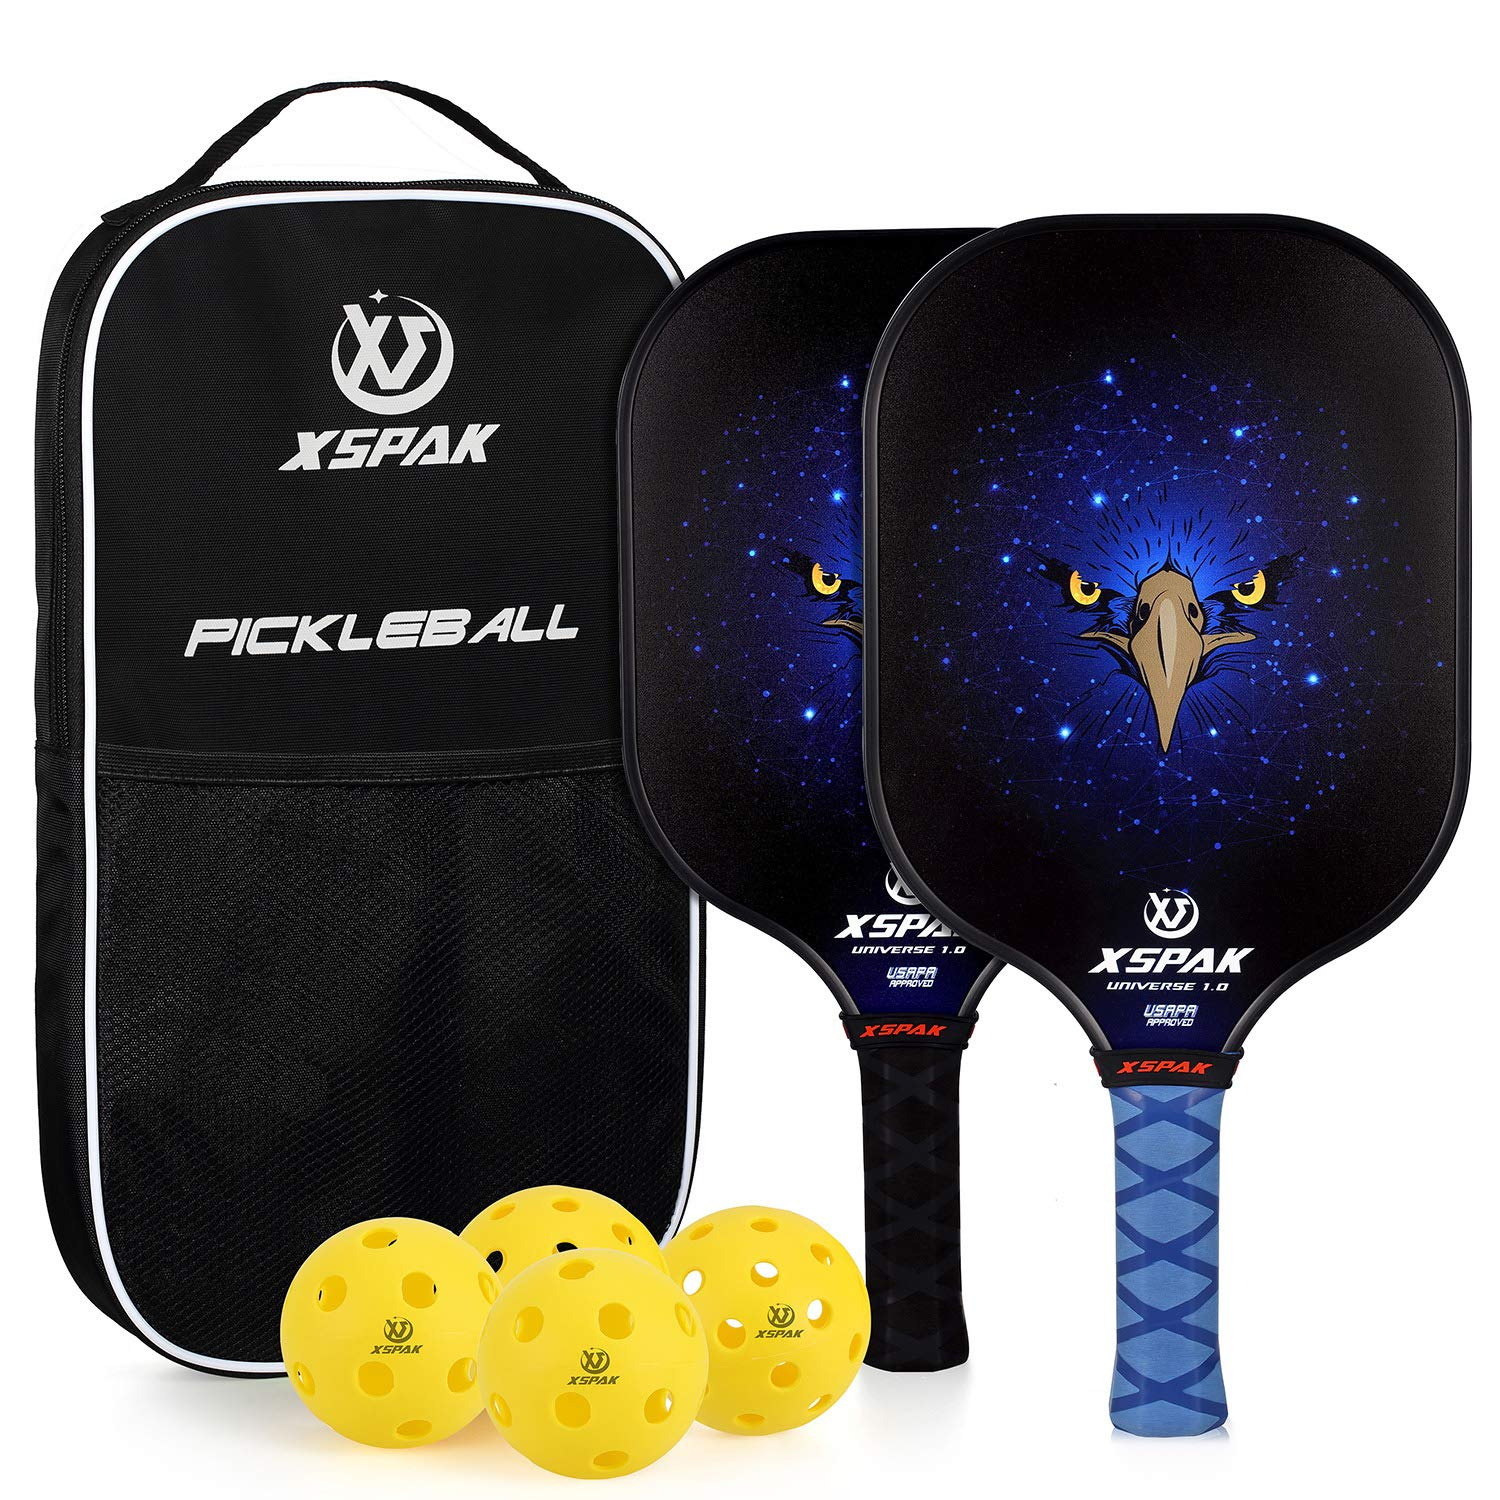 XS XSPAK Pickleball Paddle Set of 2, Graphite Honeycomb Composite Core Paddle Sets Including Racket Bag, 2 Indoor Balls and 2 Outdoor Balls, USAPA Approved by XS XSPAK